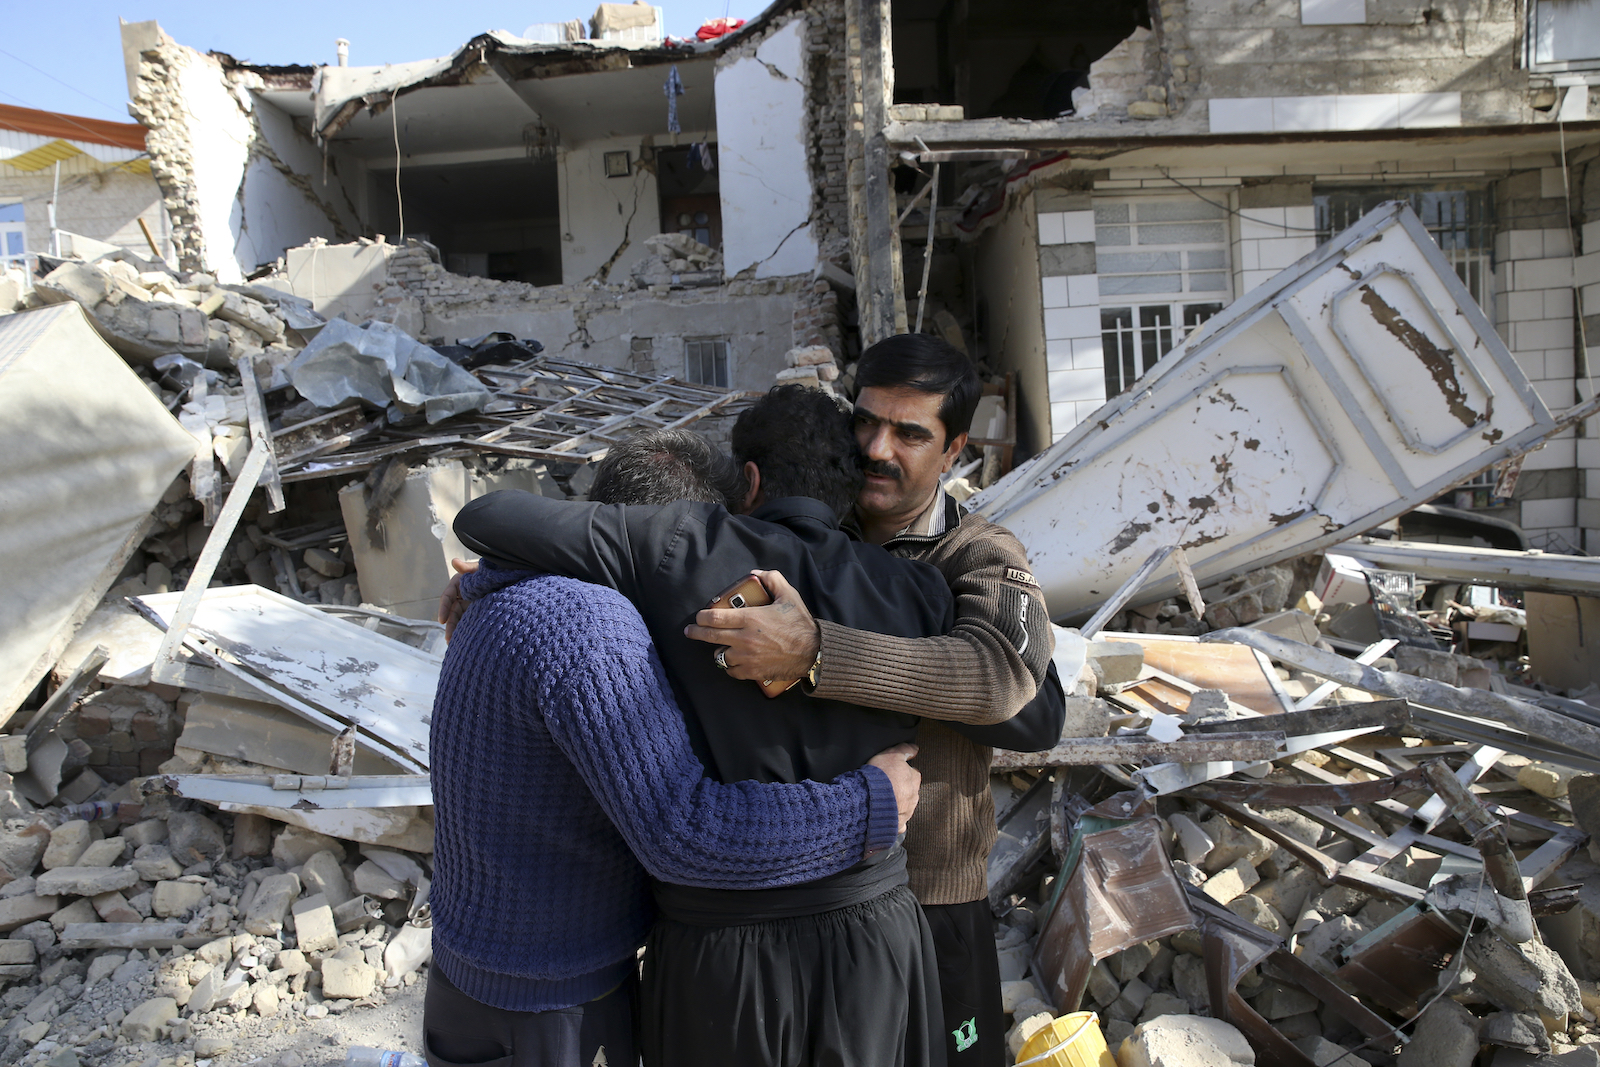 Survivors of the earthquake in Iran